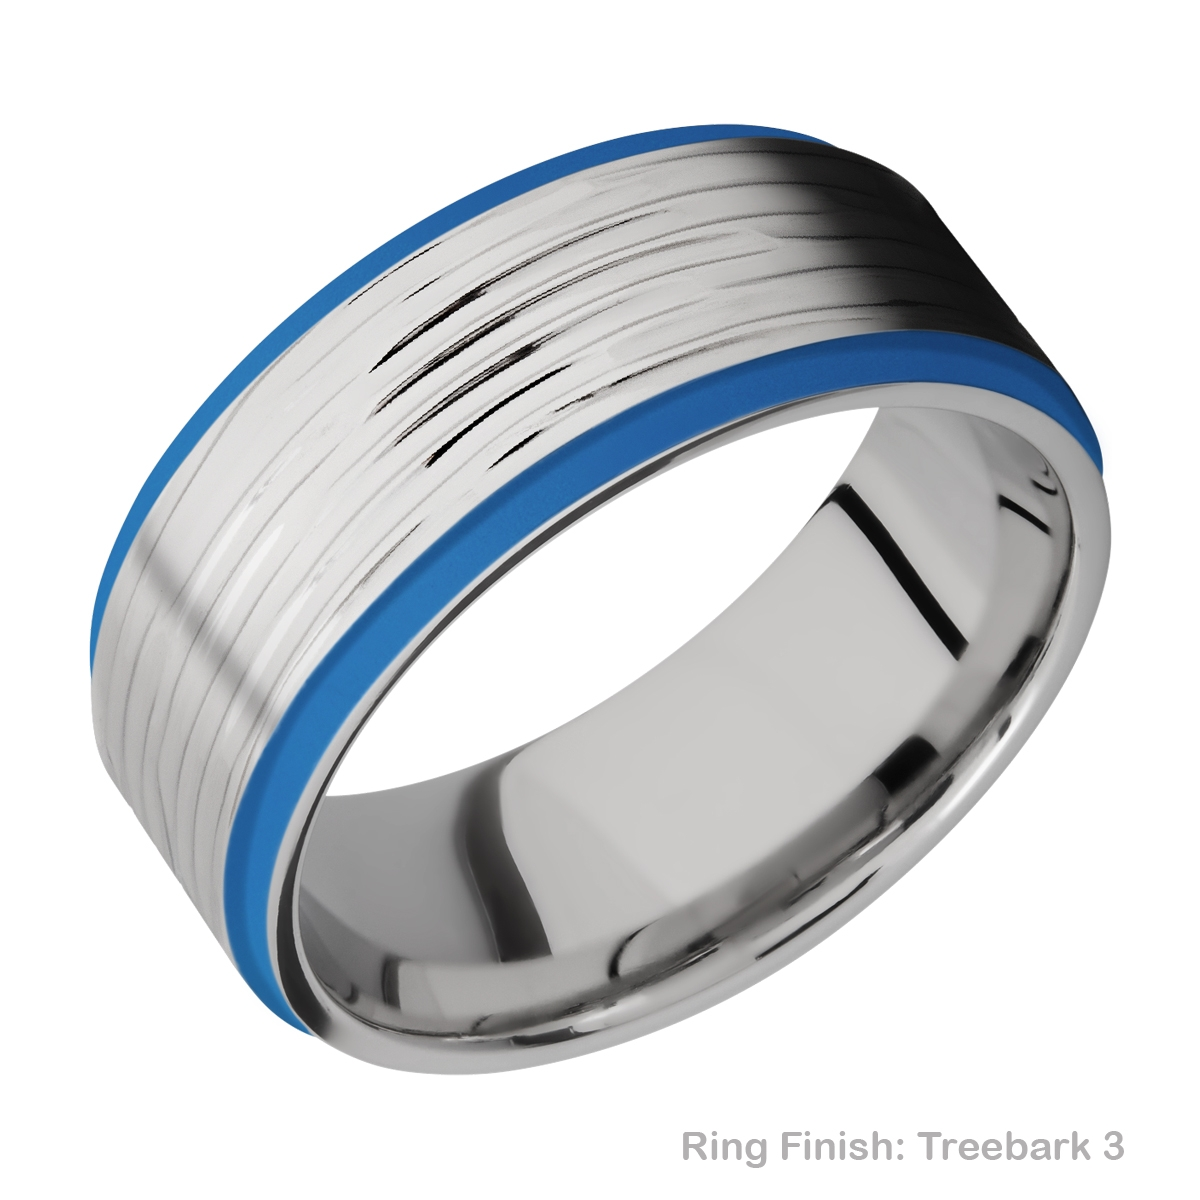 Lashbrook CC10FGE21EDGE/A/CERAKOTE Cobalt Chrome Wedding Ring or Band Alternative View 12